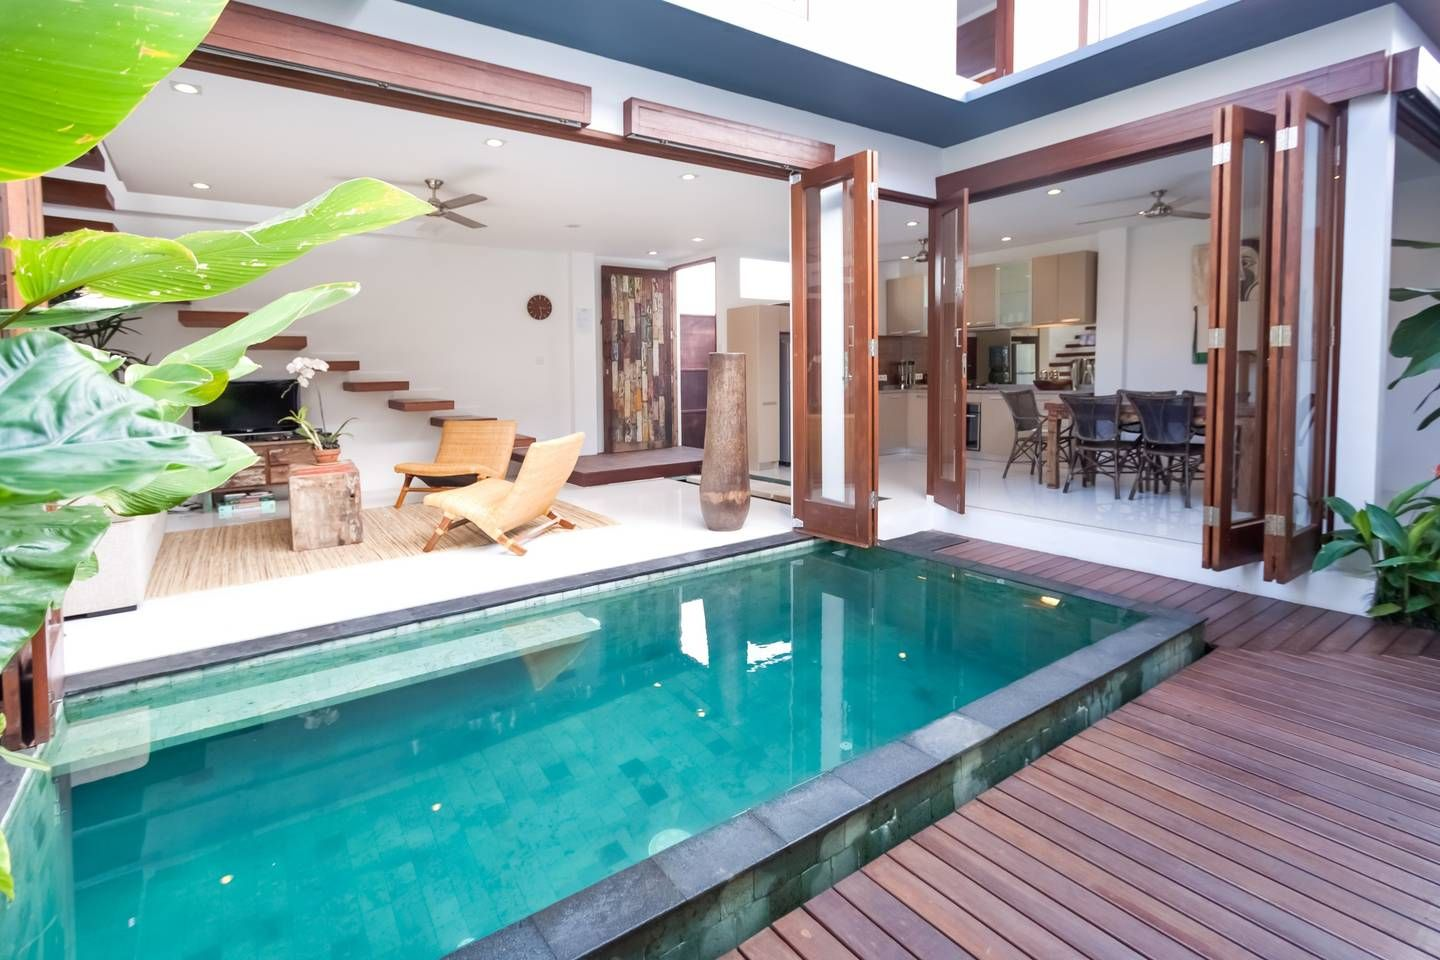 The Villa Entertaining Area Pool Houses Bali House Pool Designs